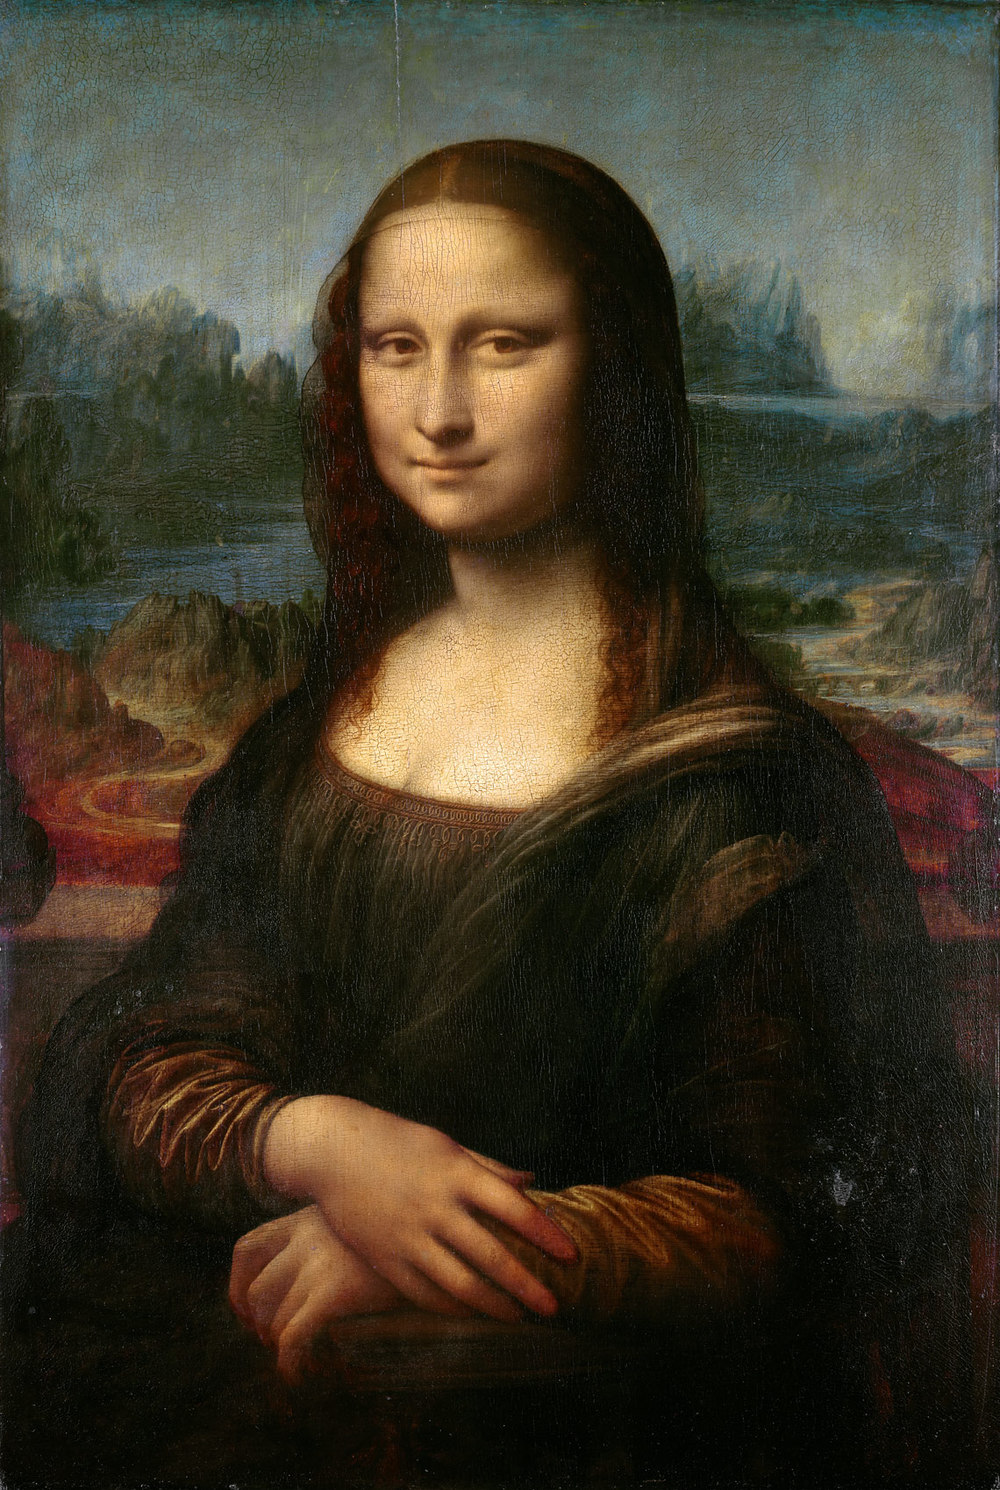 Mona_Lisa,_by_Leonardo_da_Vinci,_from_C2RMF_CC.jpg